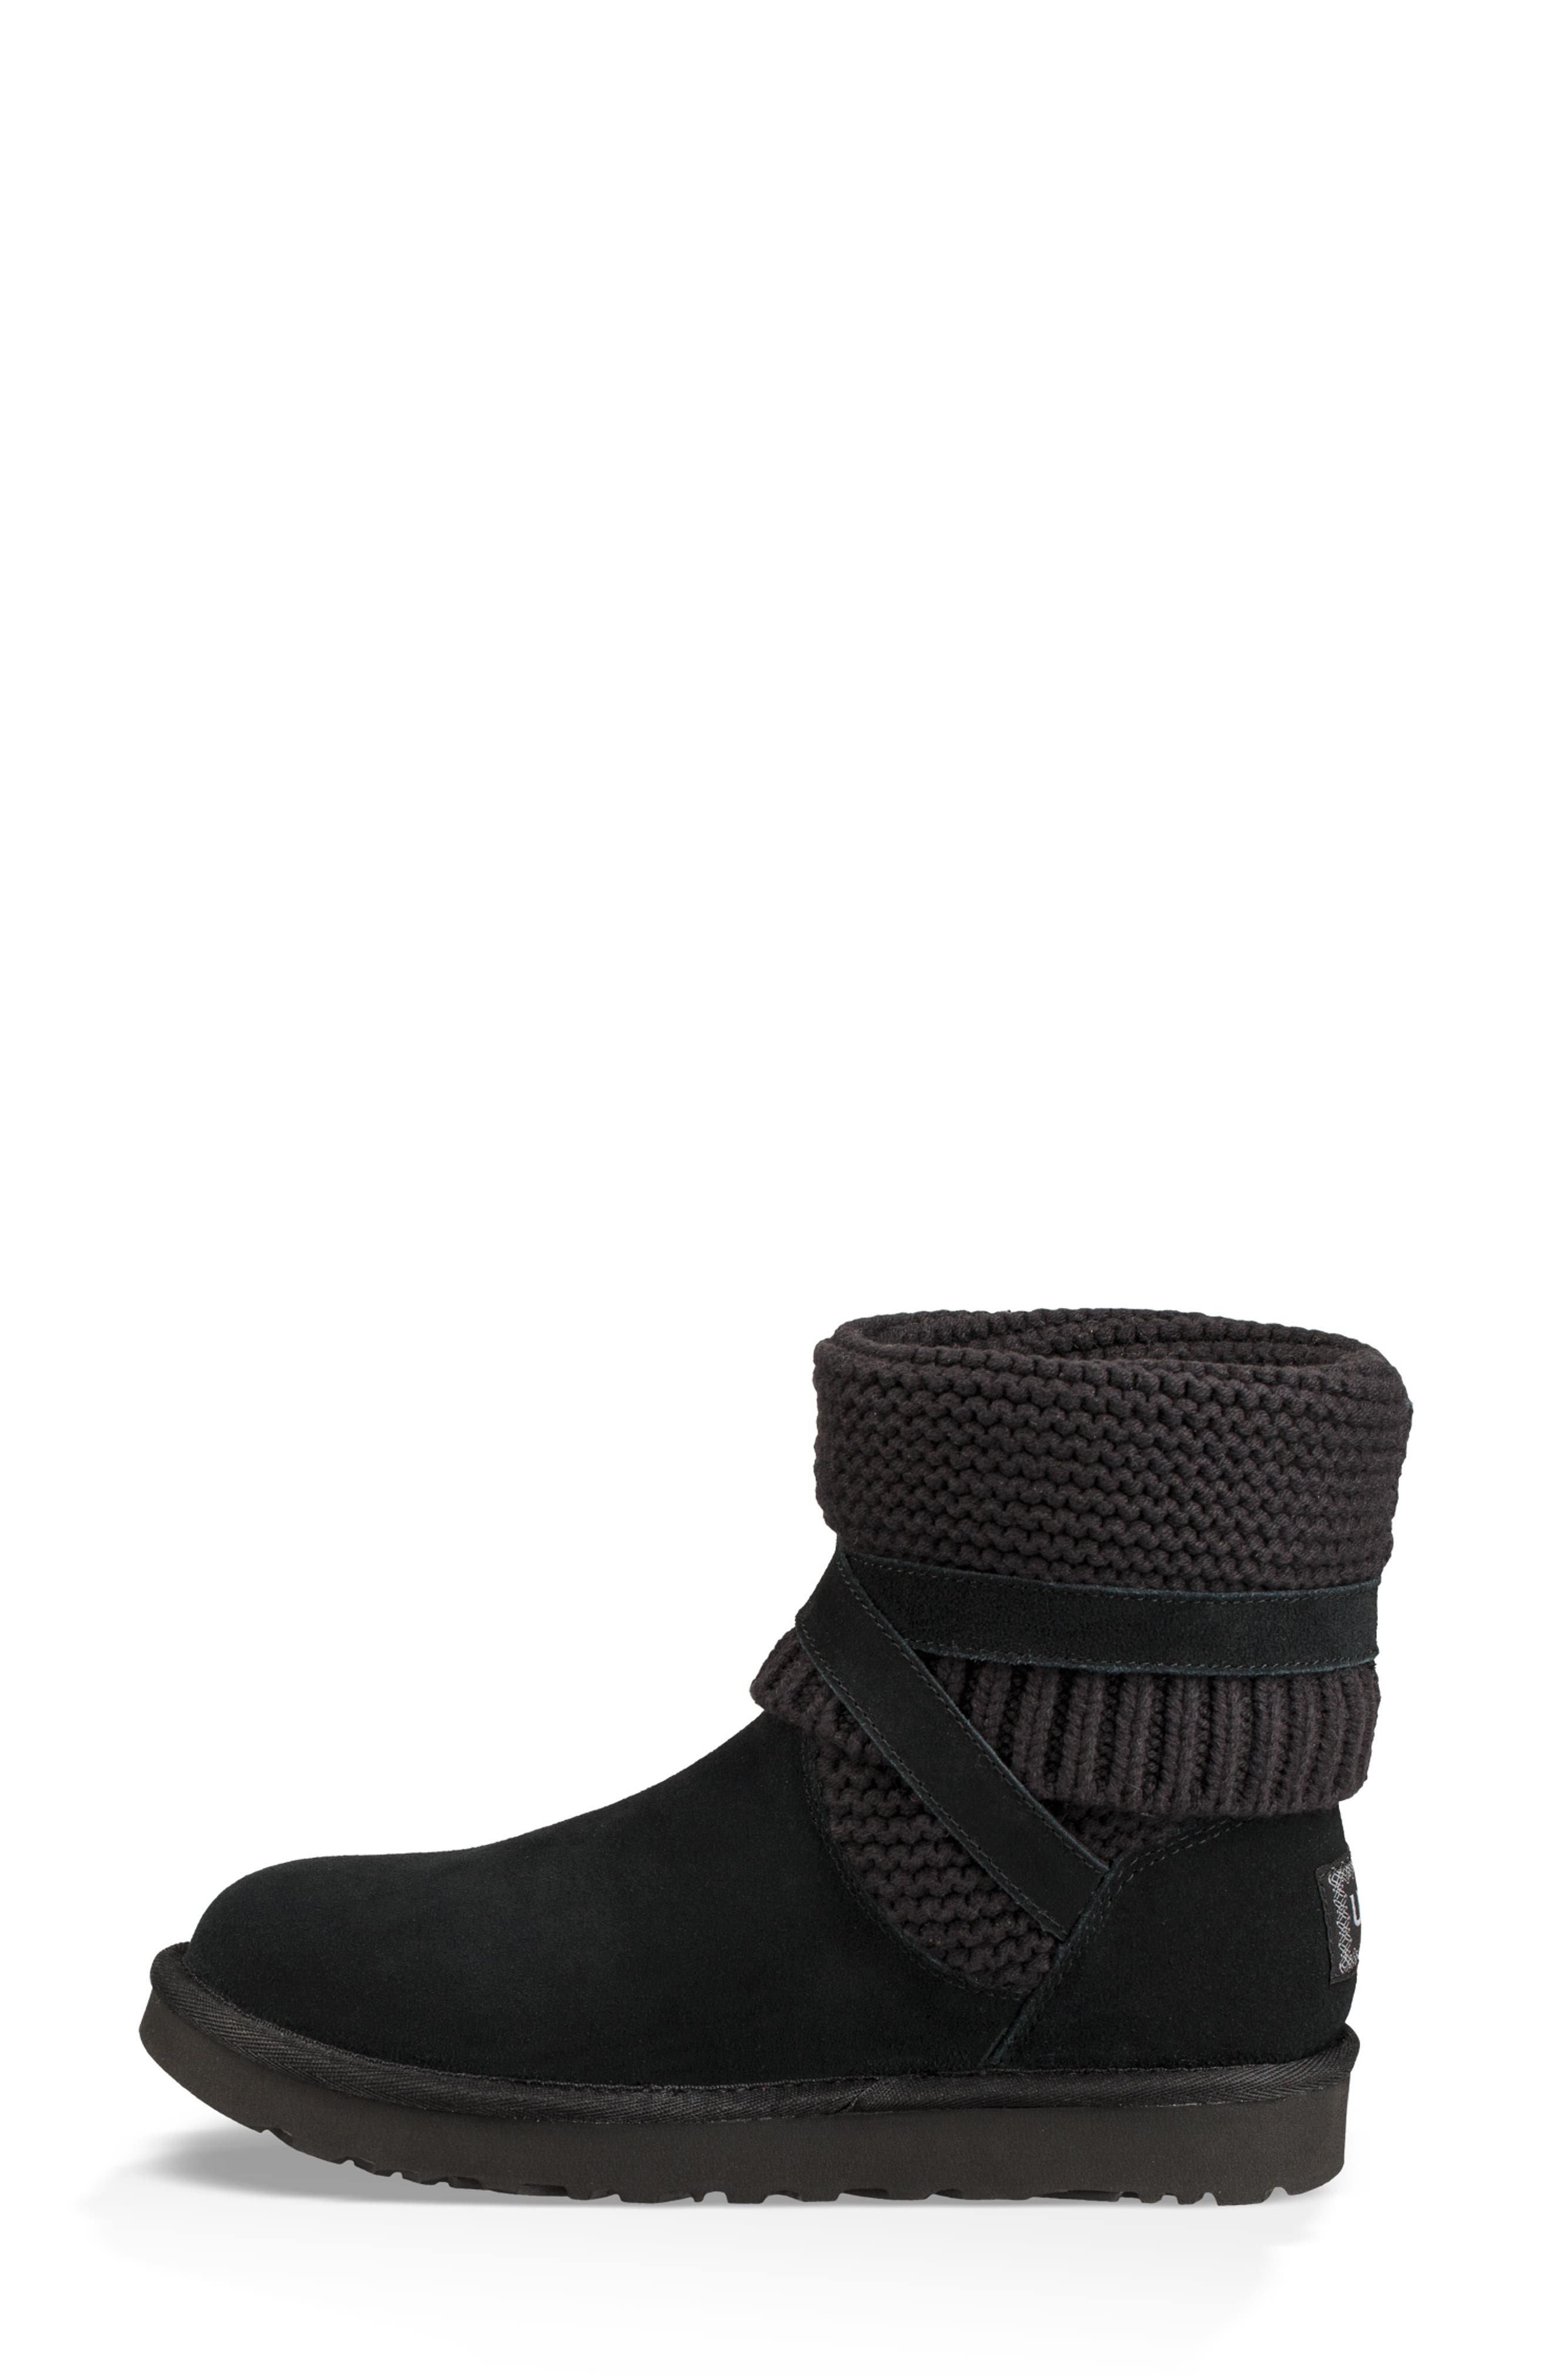 UGGpure<sup>™</sup> Strappy Purl Knit Bootie,                             Alternate thumbnail 10, color,                             BLACK SUEDE